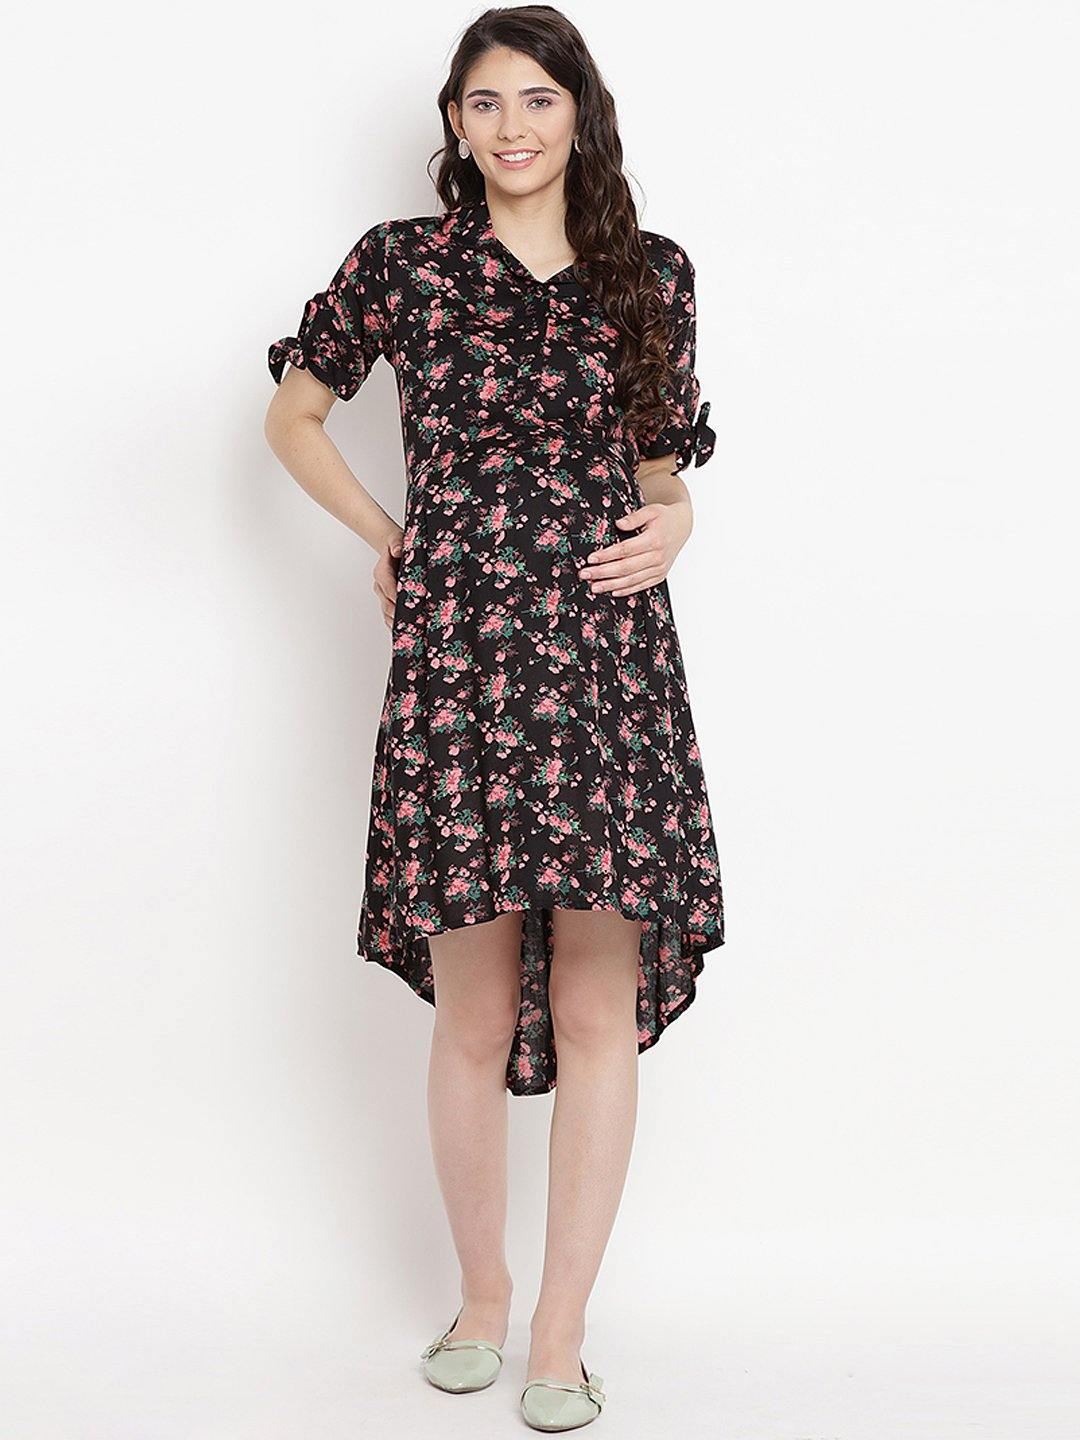 Black High-Low Maternity Dress w/ Floral Design, Made of Rayon- Mine4Nine